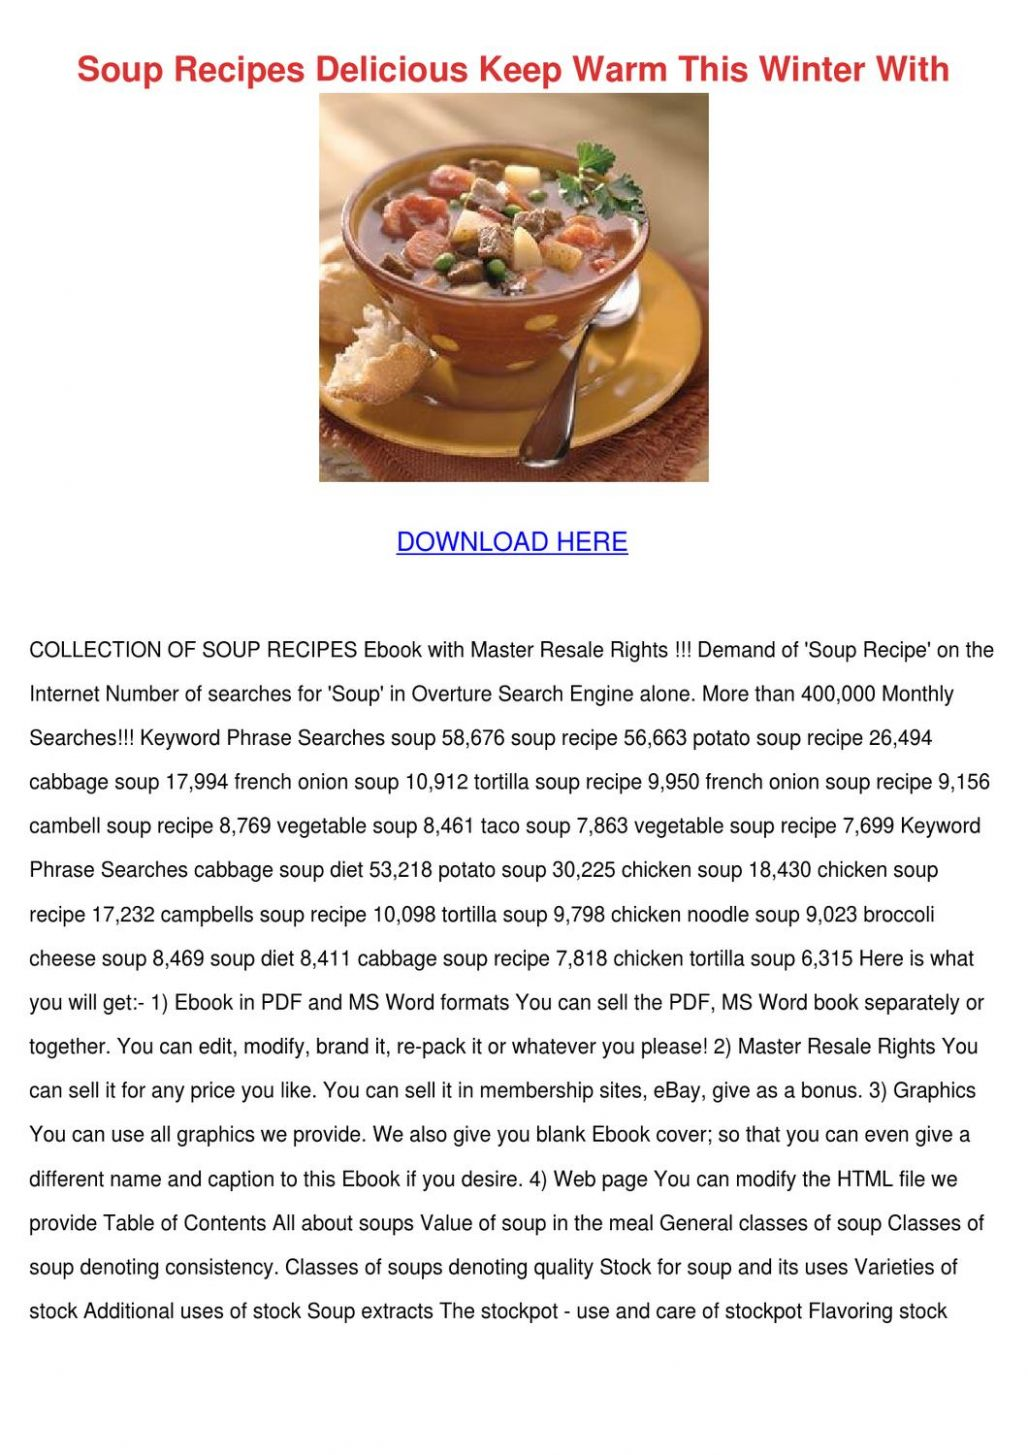 Soup Recipes Delicious Keep Warm This Winter by AustinWillis - issuu - Soup Recipes Pdf